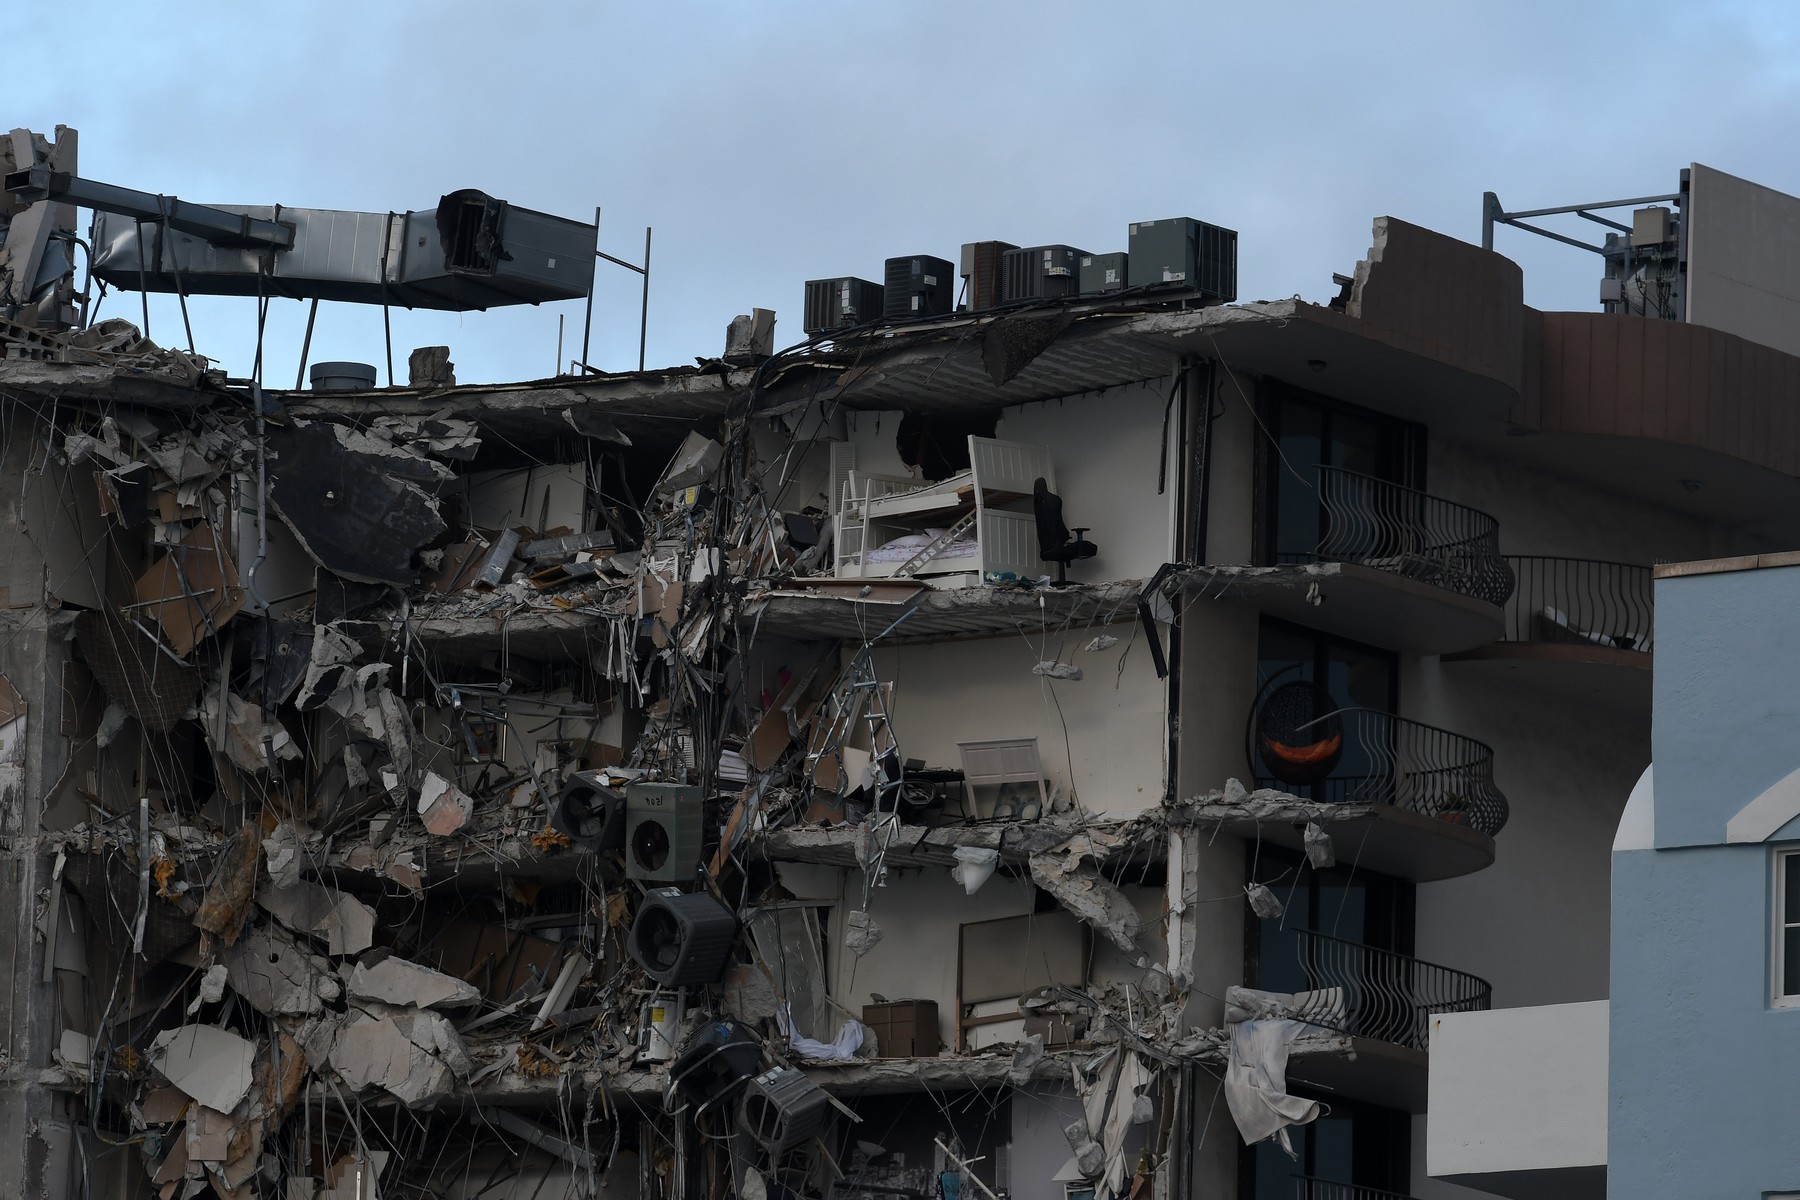 Occupied Miami Beach condo in upscale Surfside neighborhood collapses in the night leaving many feared injured or dead